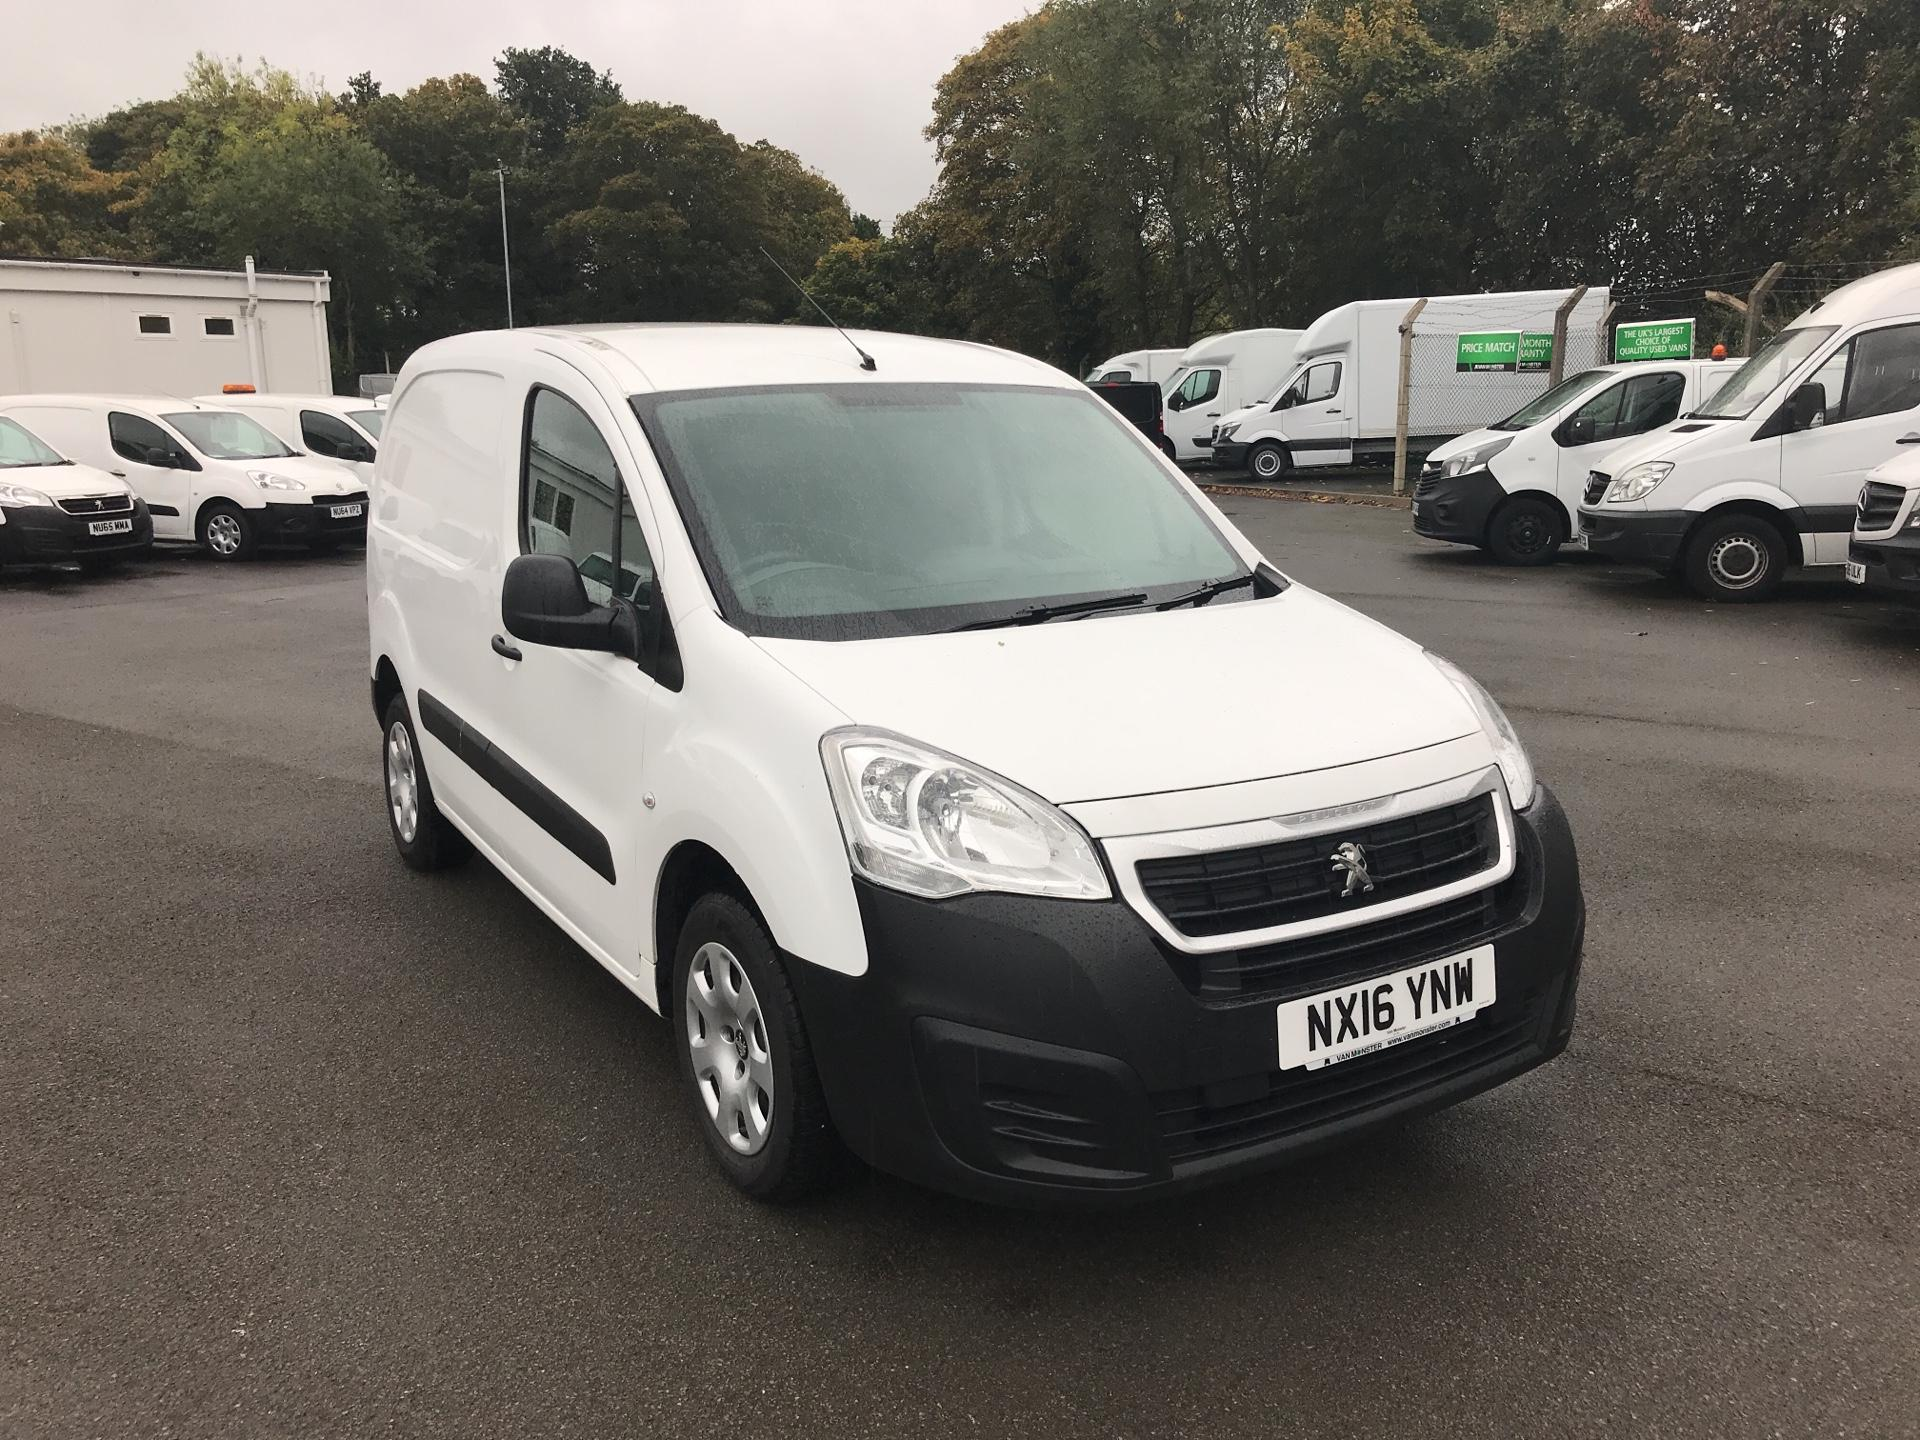 2016 Peugeot Partner  1.3 HDI 75 NON S/S  EURO 5 *VALUE RANGE VEHICLE - CONDITION REFLECTED IN PRICE* (NX16YNW)